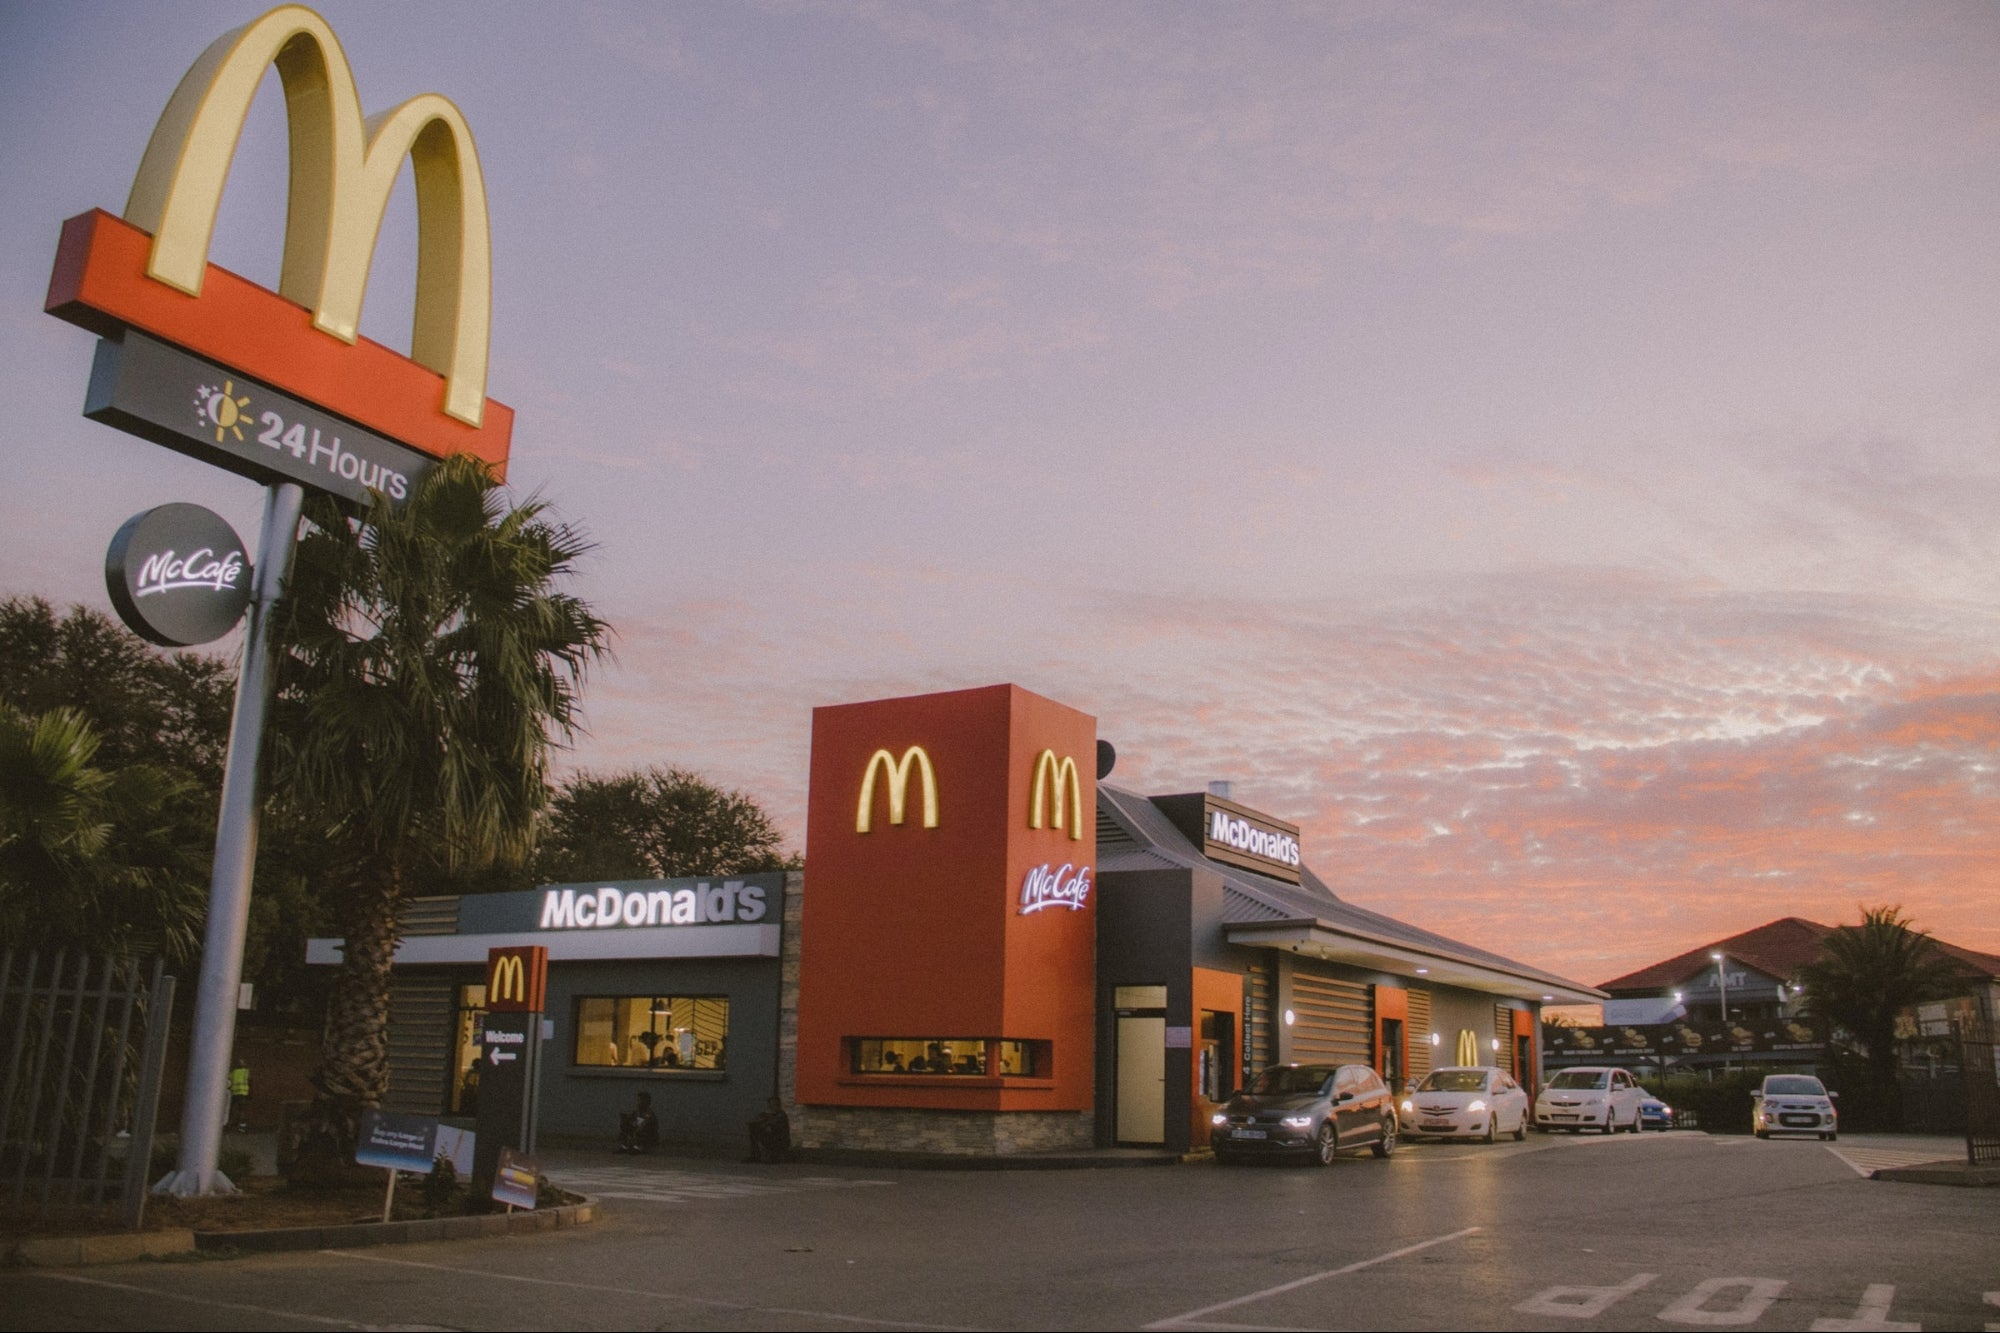 VIDEO: Did all the workers at a McDonald's quit in the middle of the day?